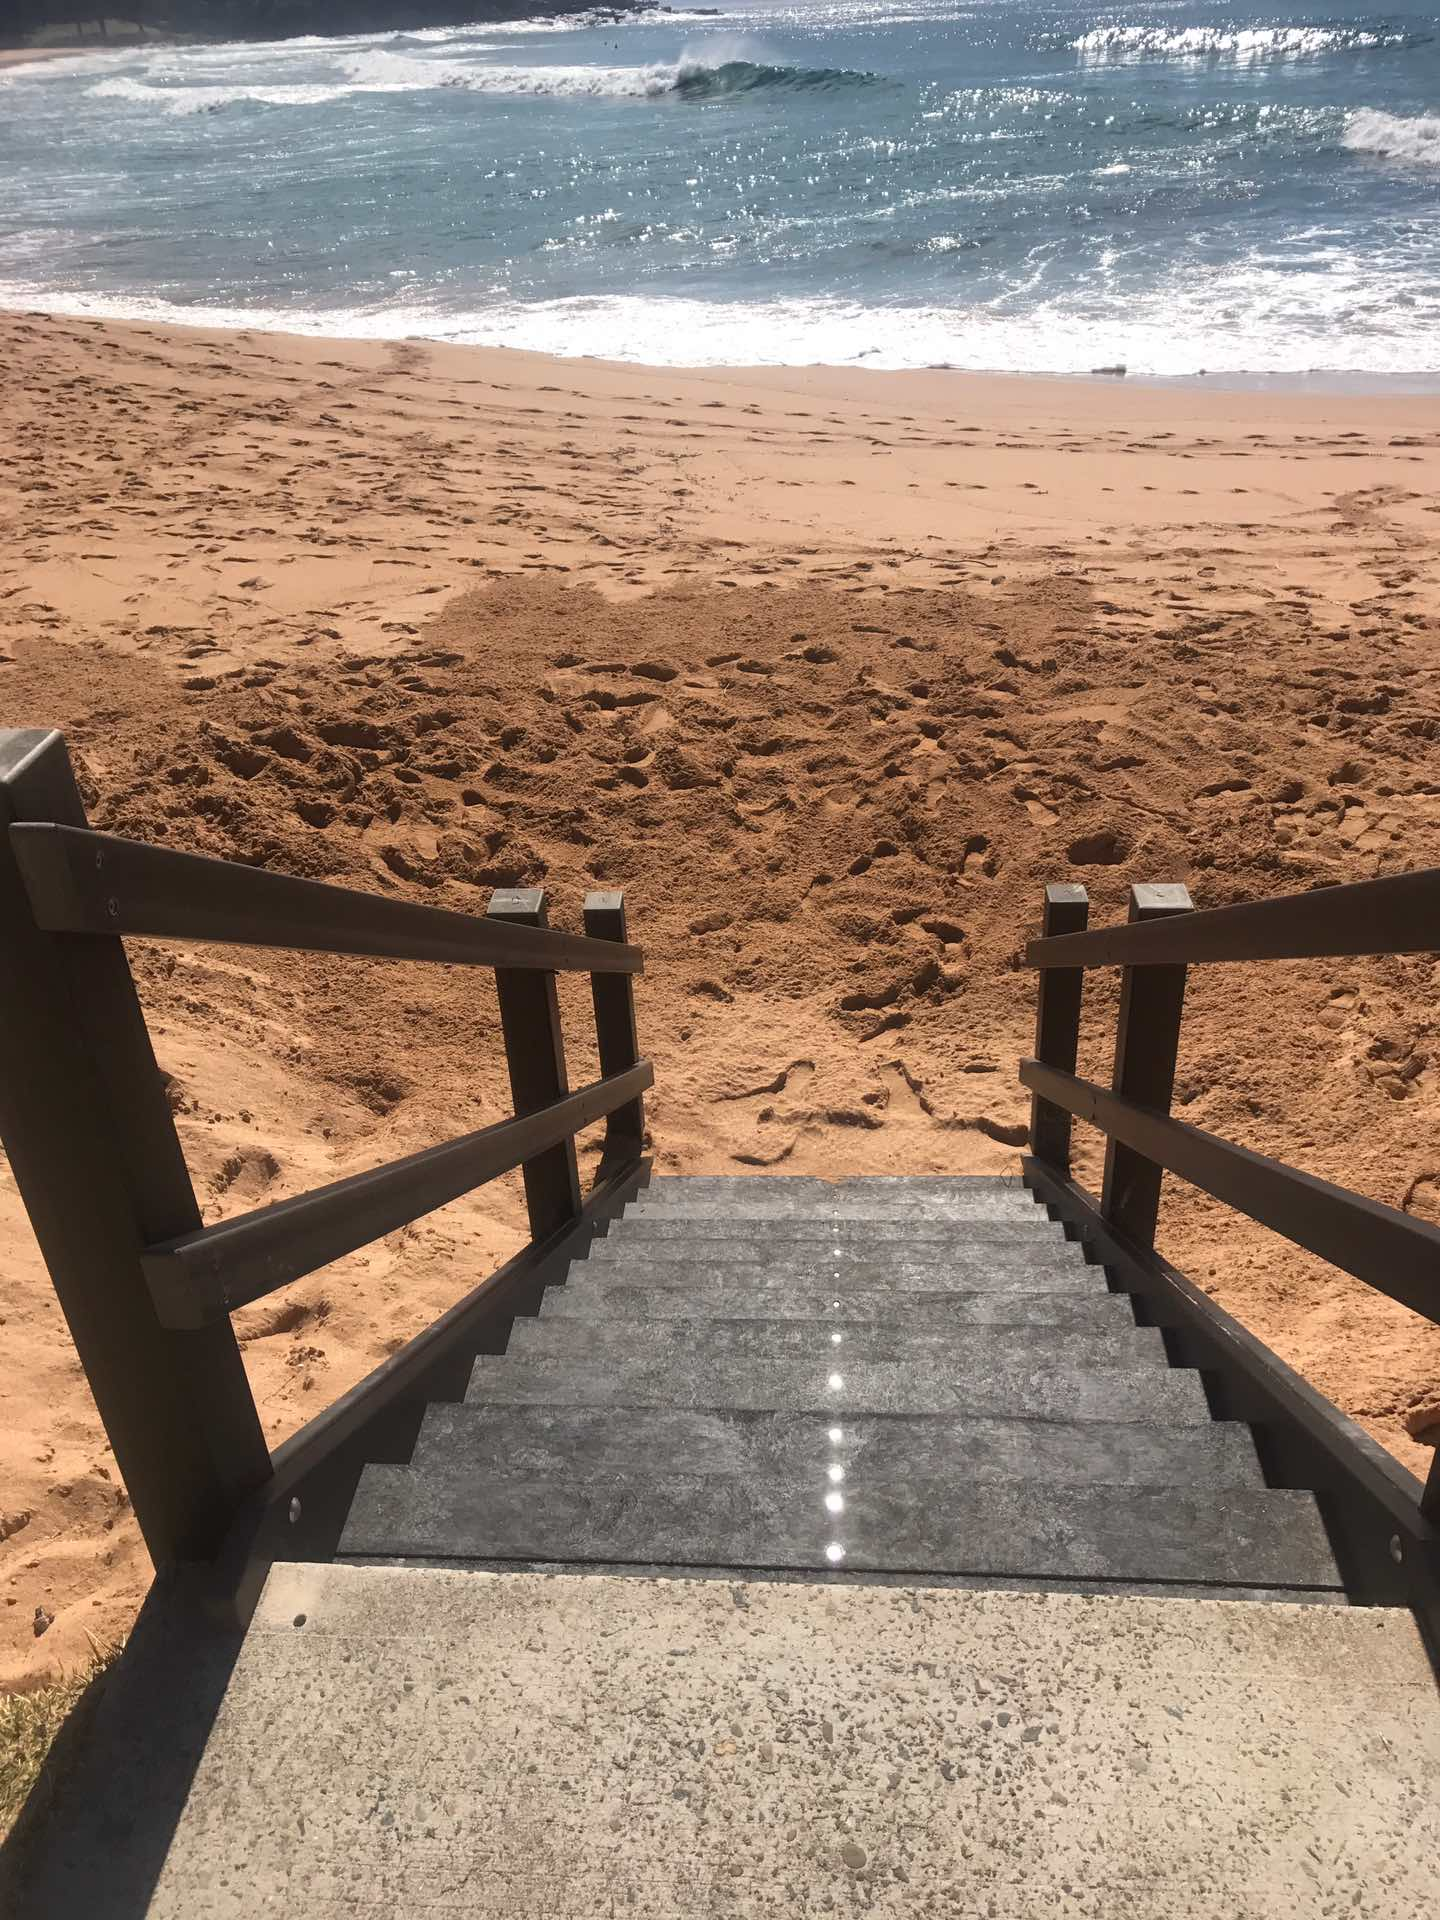 New access stairs at Whale beach. 100% recycled material zero maintenance  Whale Beach, NSW